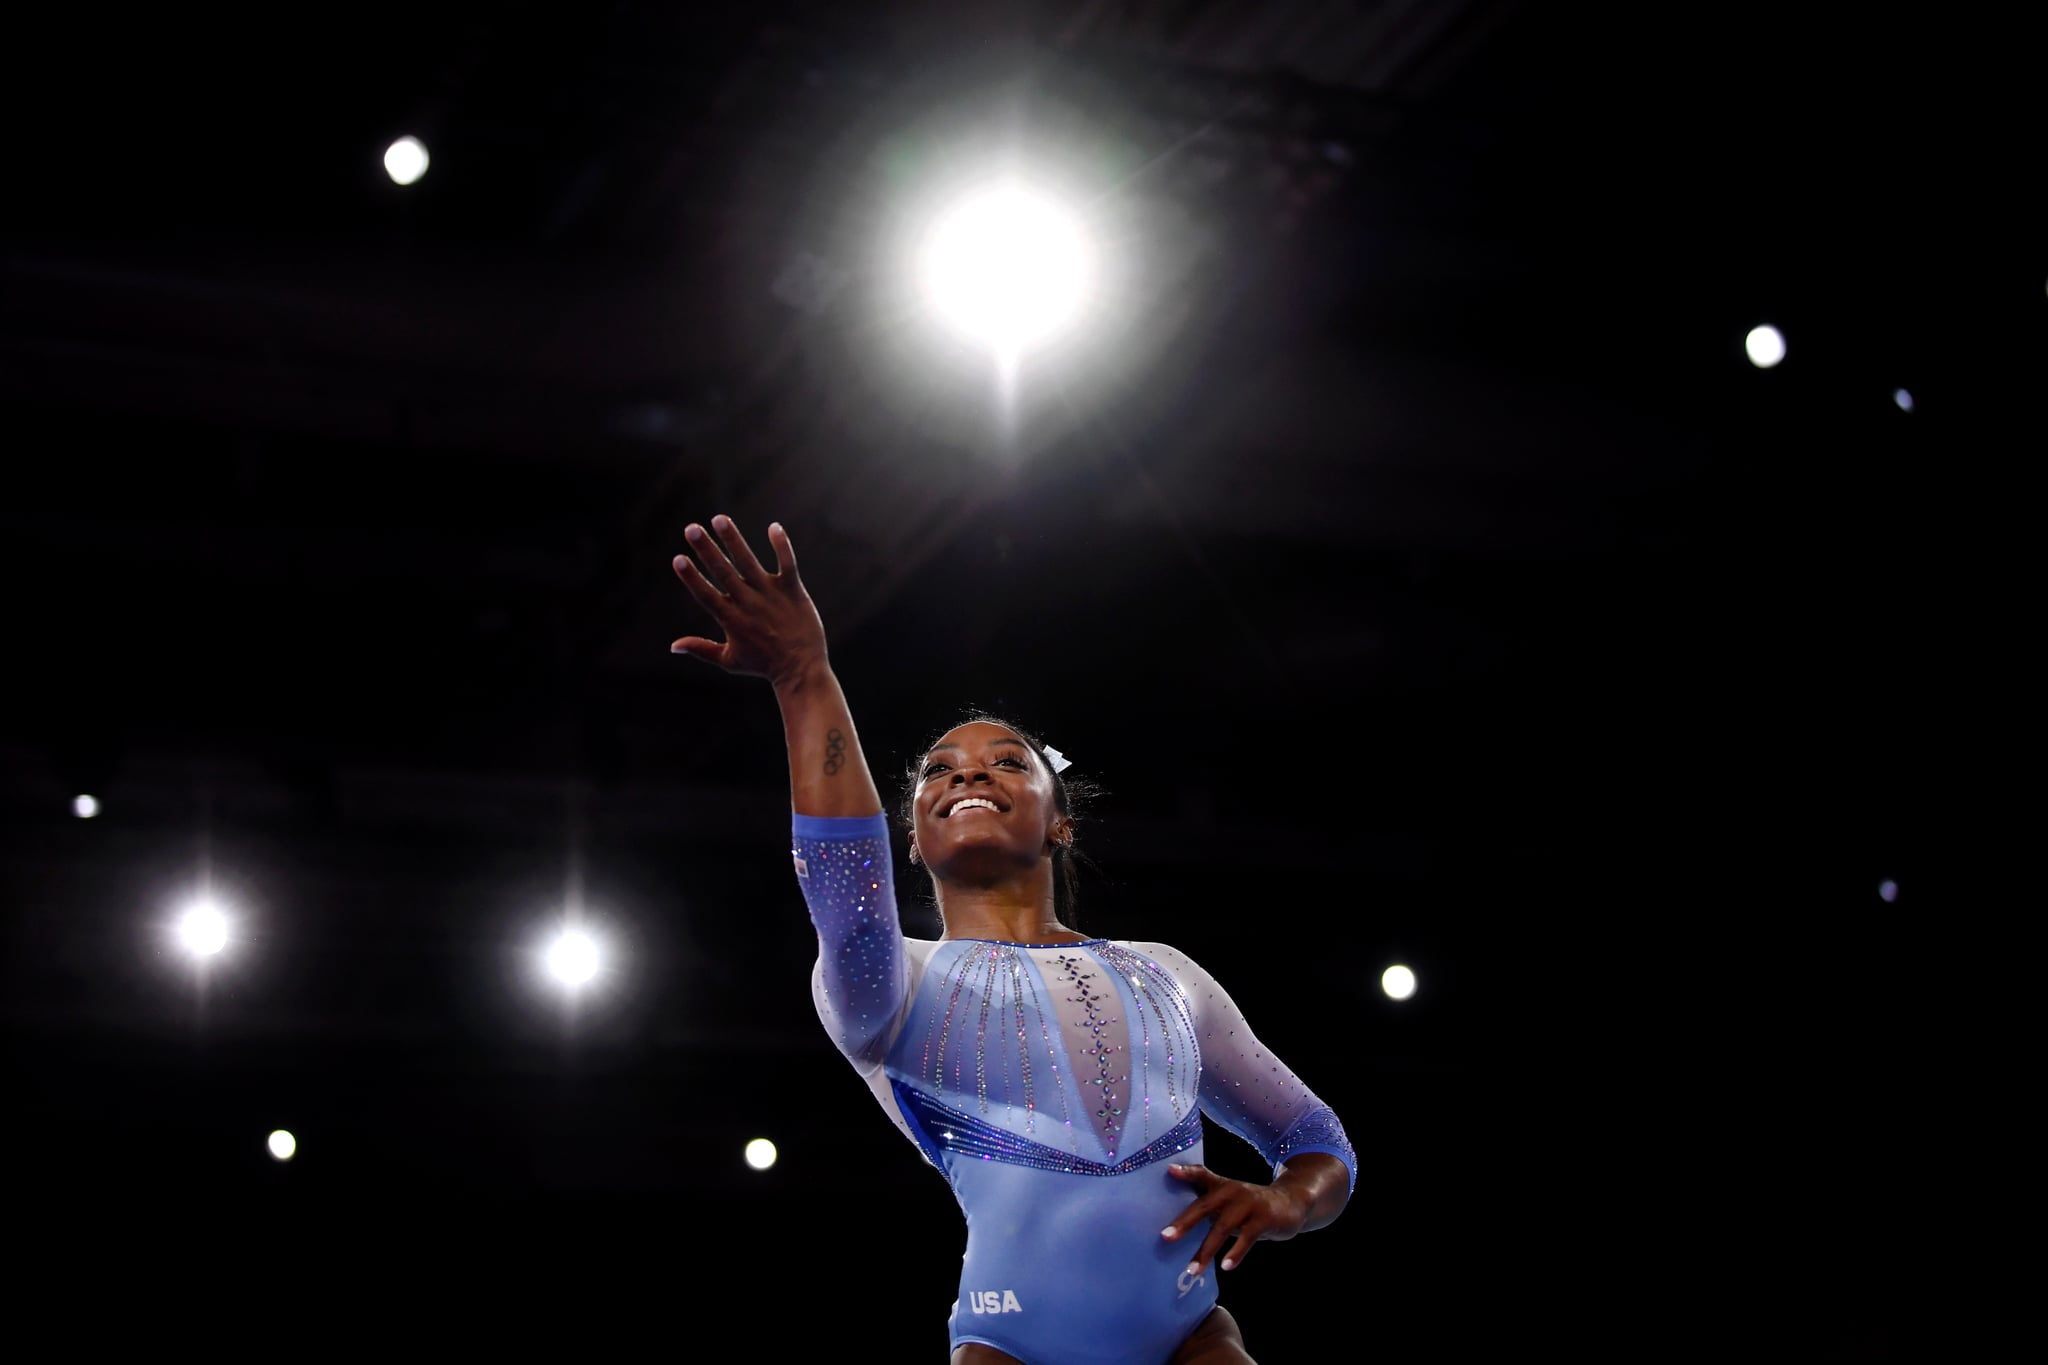 STUTTGART, GERMANY - OCTOBER 05: Simone Biles of USA performs on Floor during Women's Qualification on Day 2 of the FIG Artistic Gymnastics World Championships on October 05, 2019 in Stuttgart, Germany. (Photo by Laurence Griffiths/Getty Images)